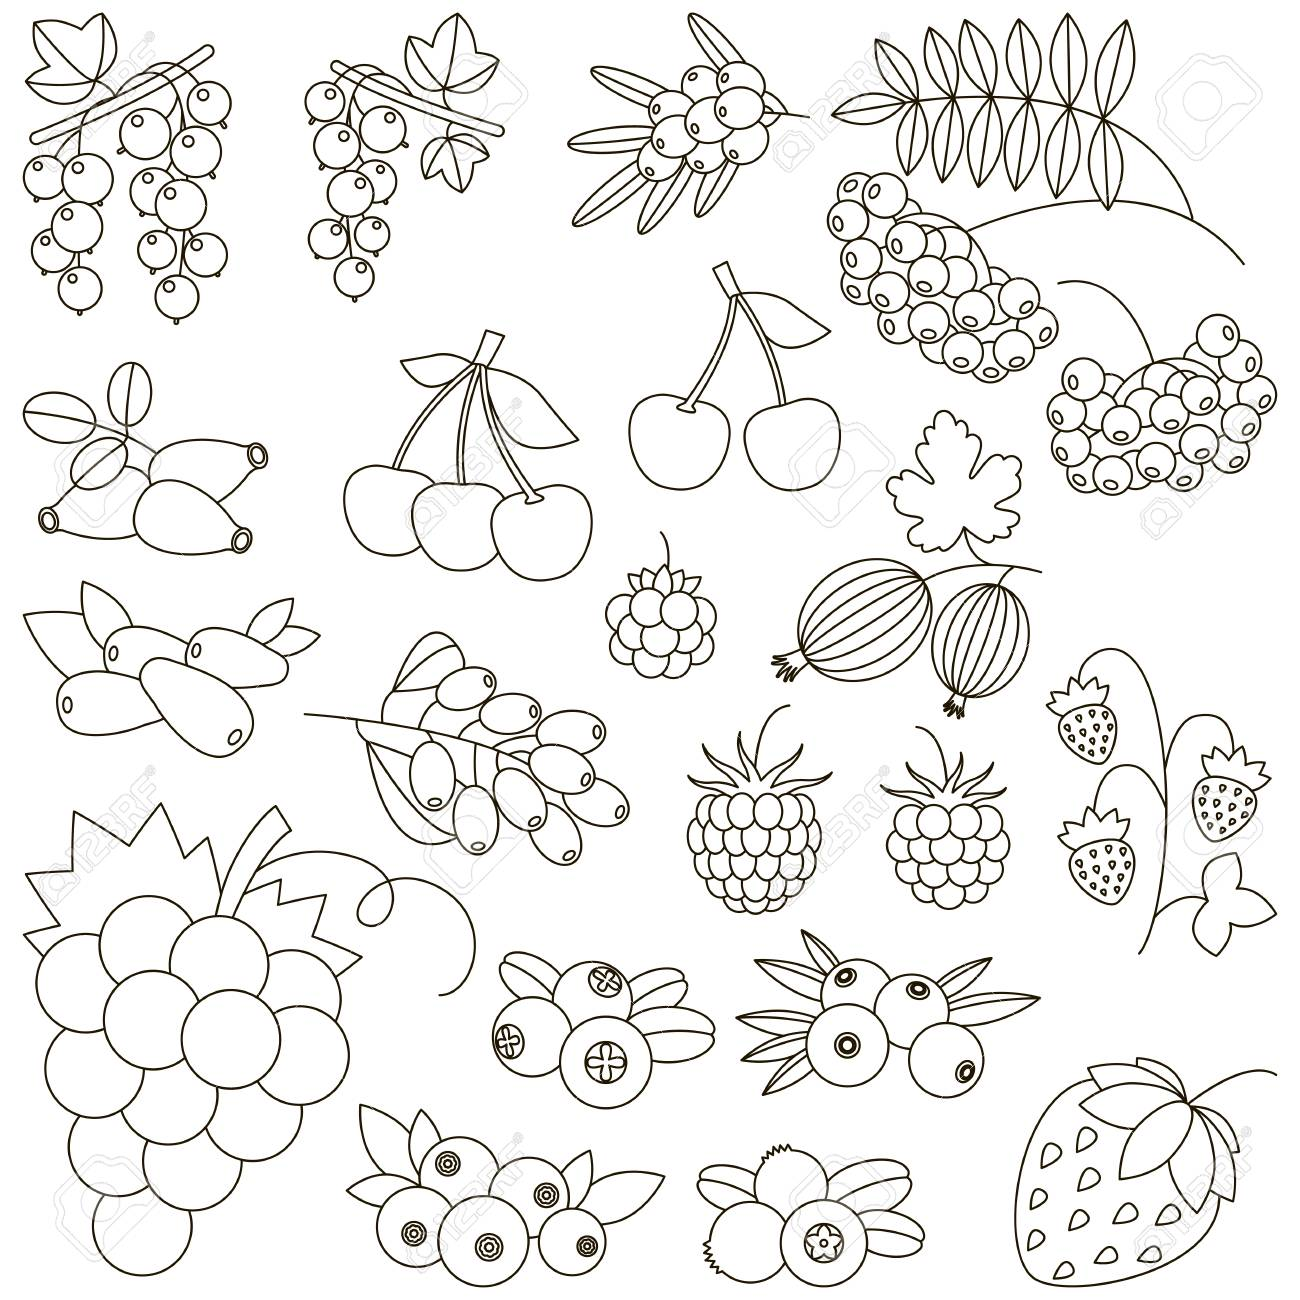 Berry Set To Be Colored Coloring Book To Educate Kids Learn